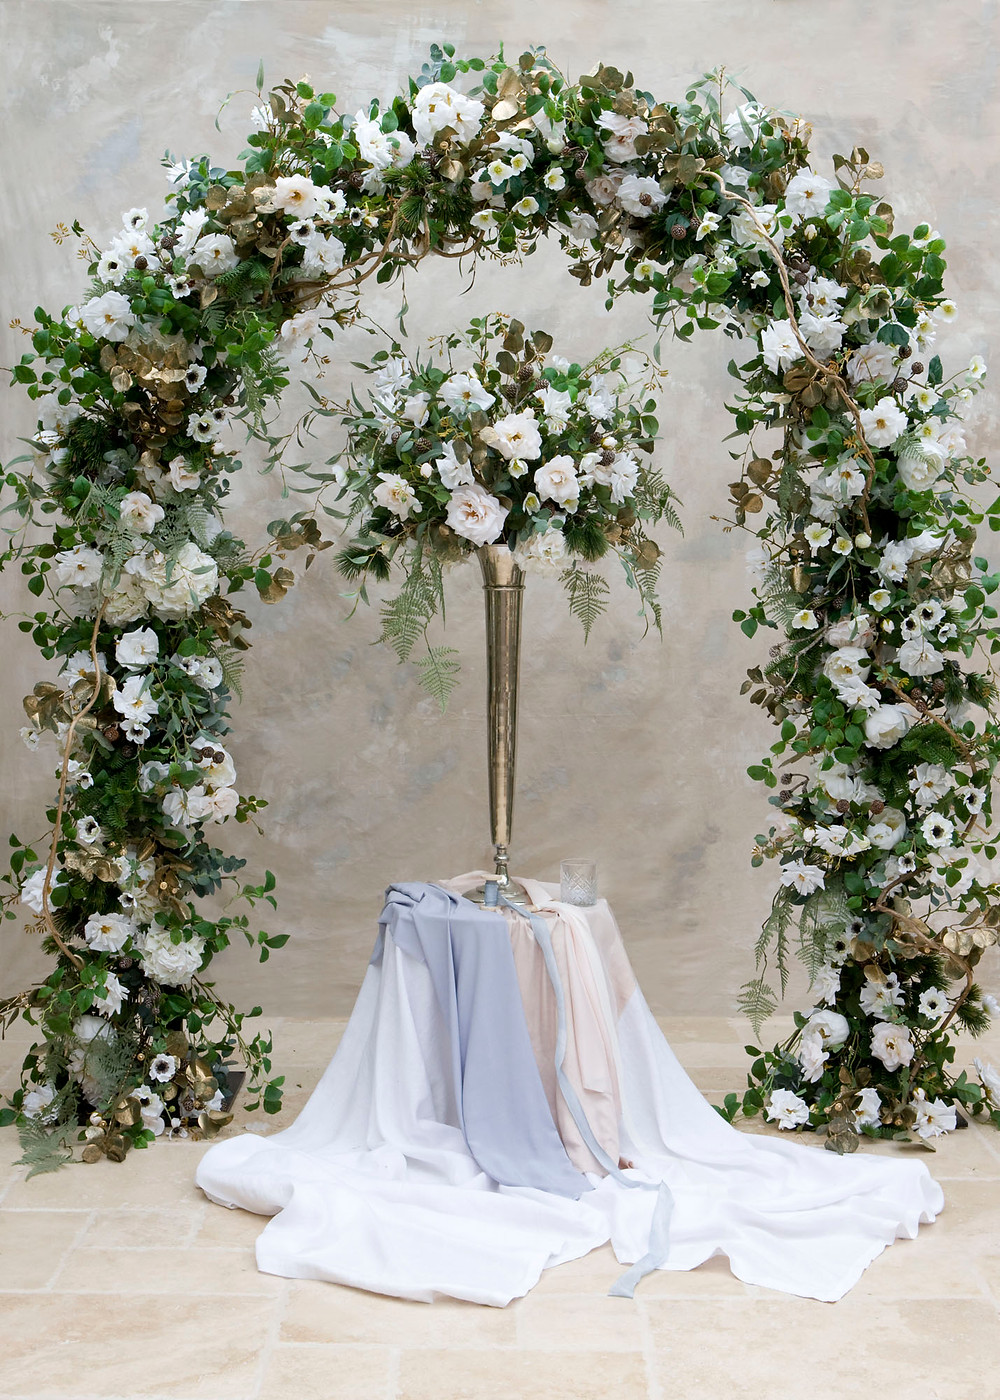 Winter wedding faux floral arch and table centrepiece for hire, Essex